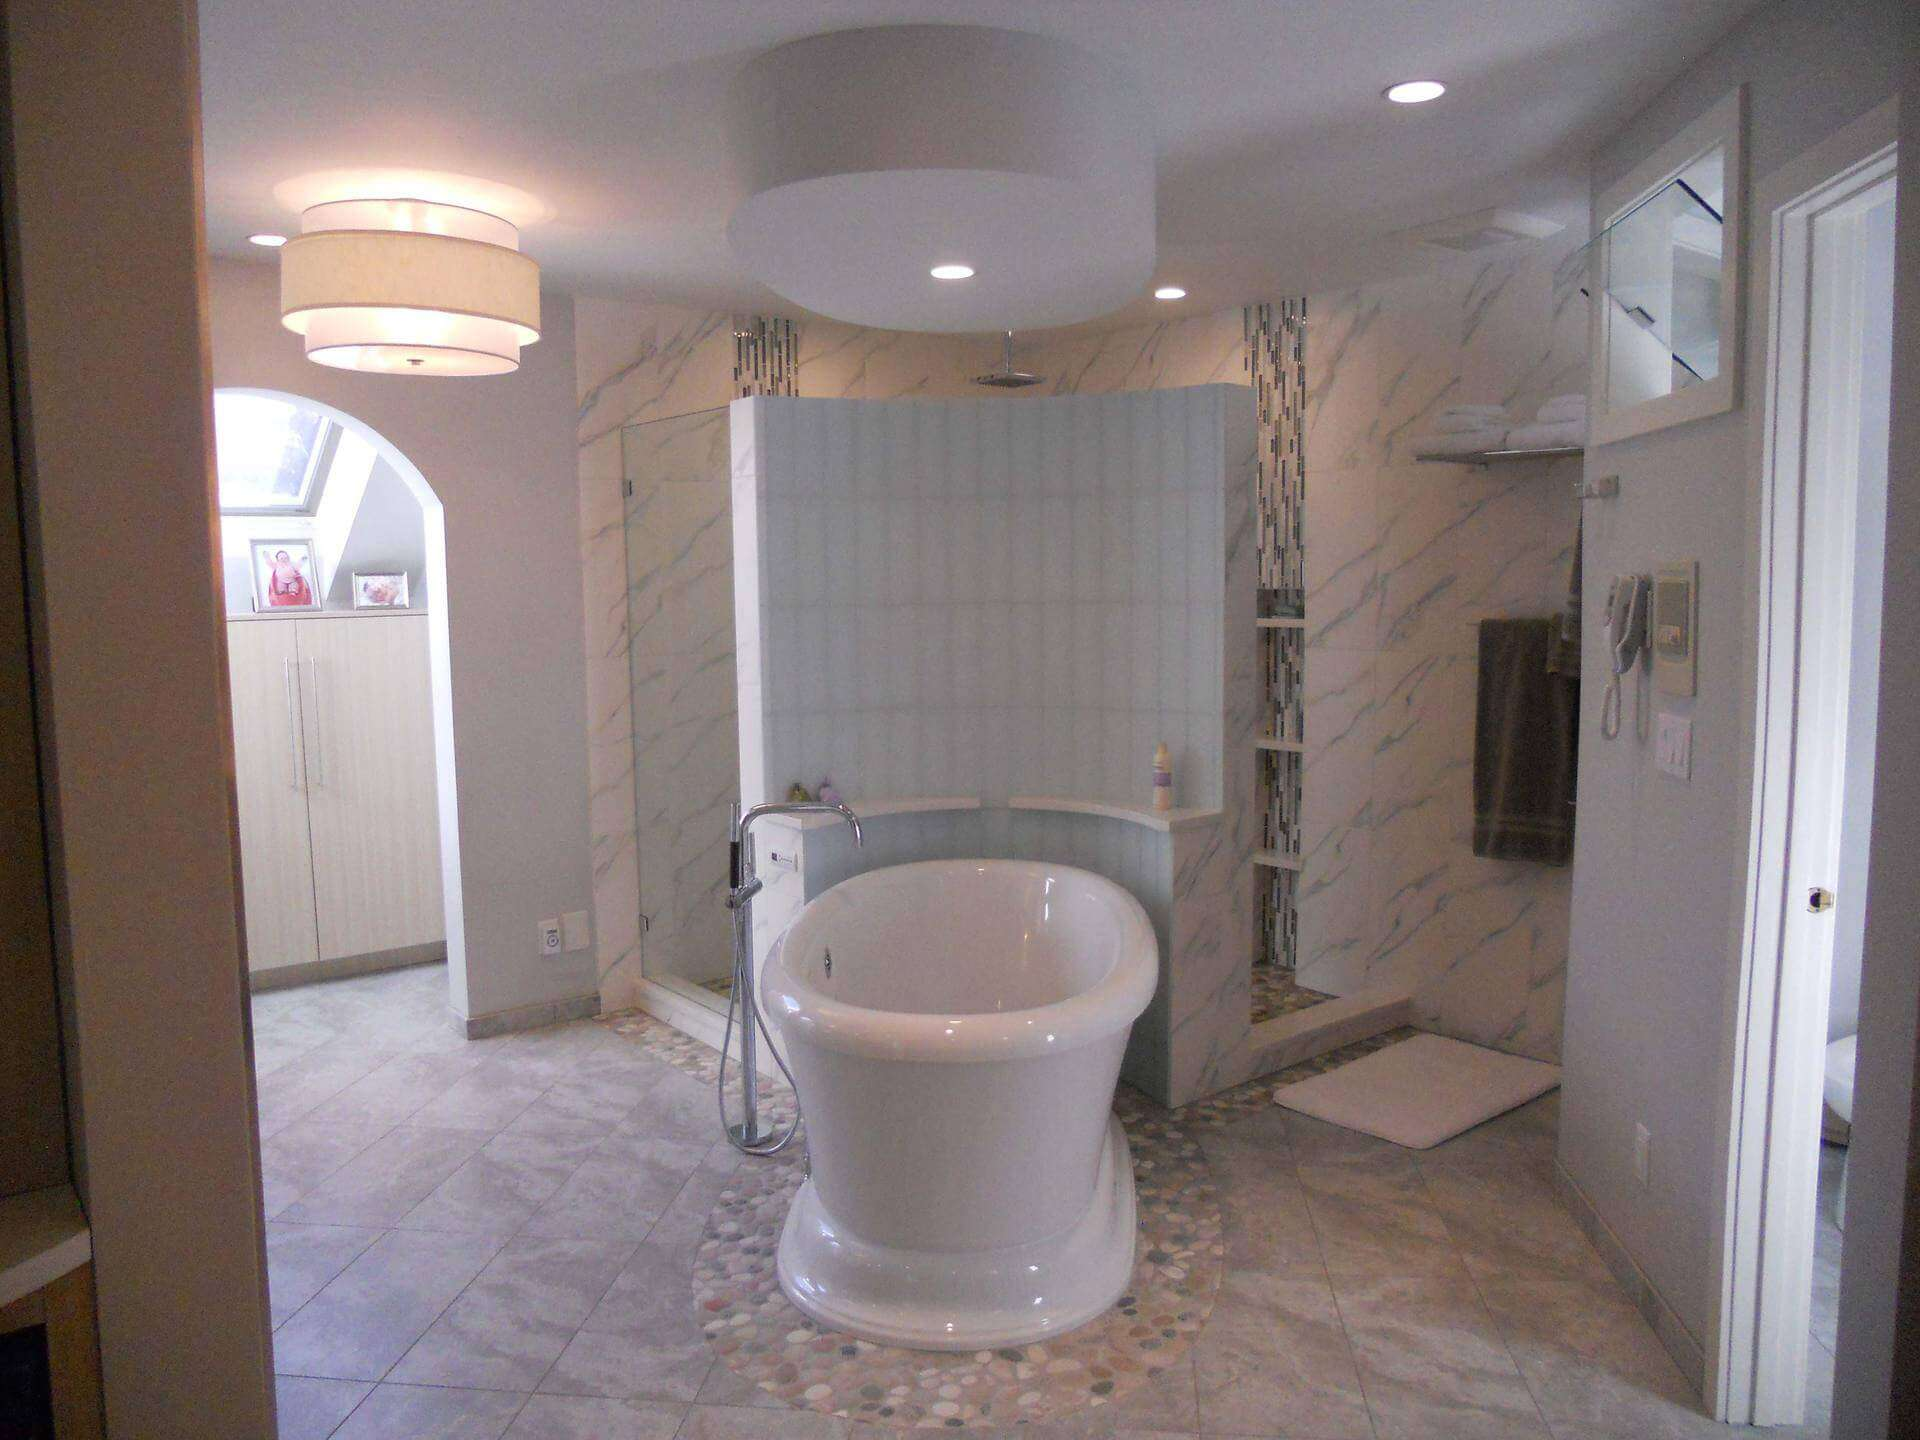 New 10 bathroom renovation rochester ny design Bathroom remodeling services